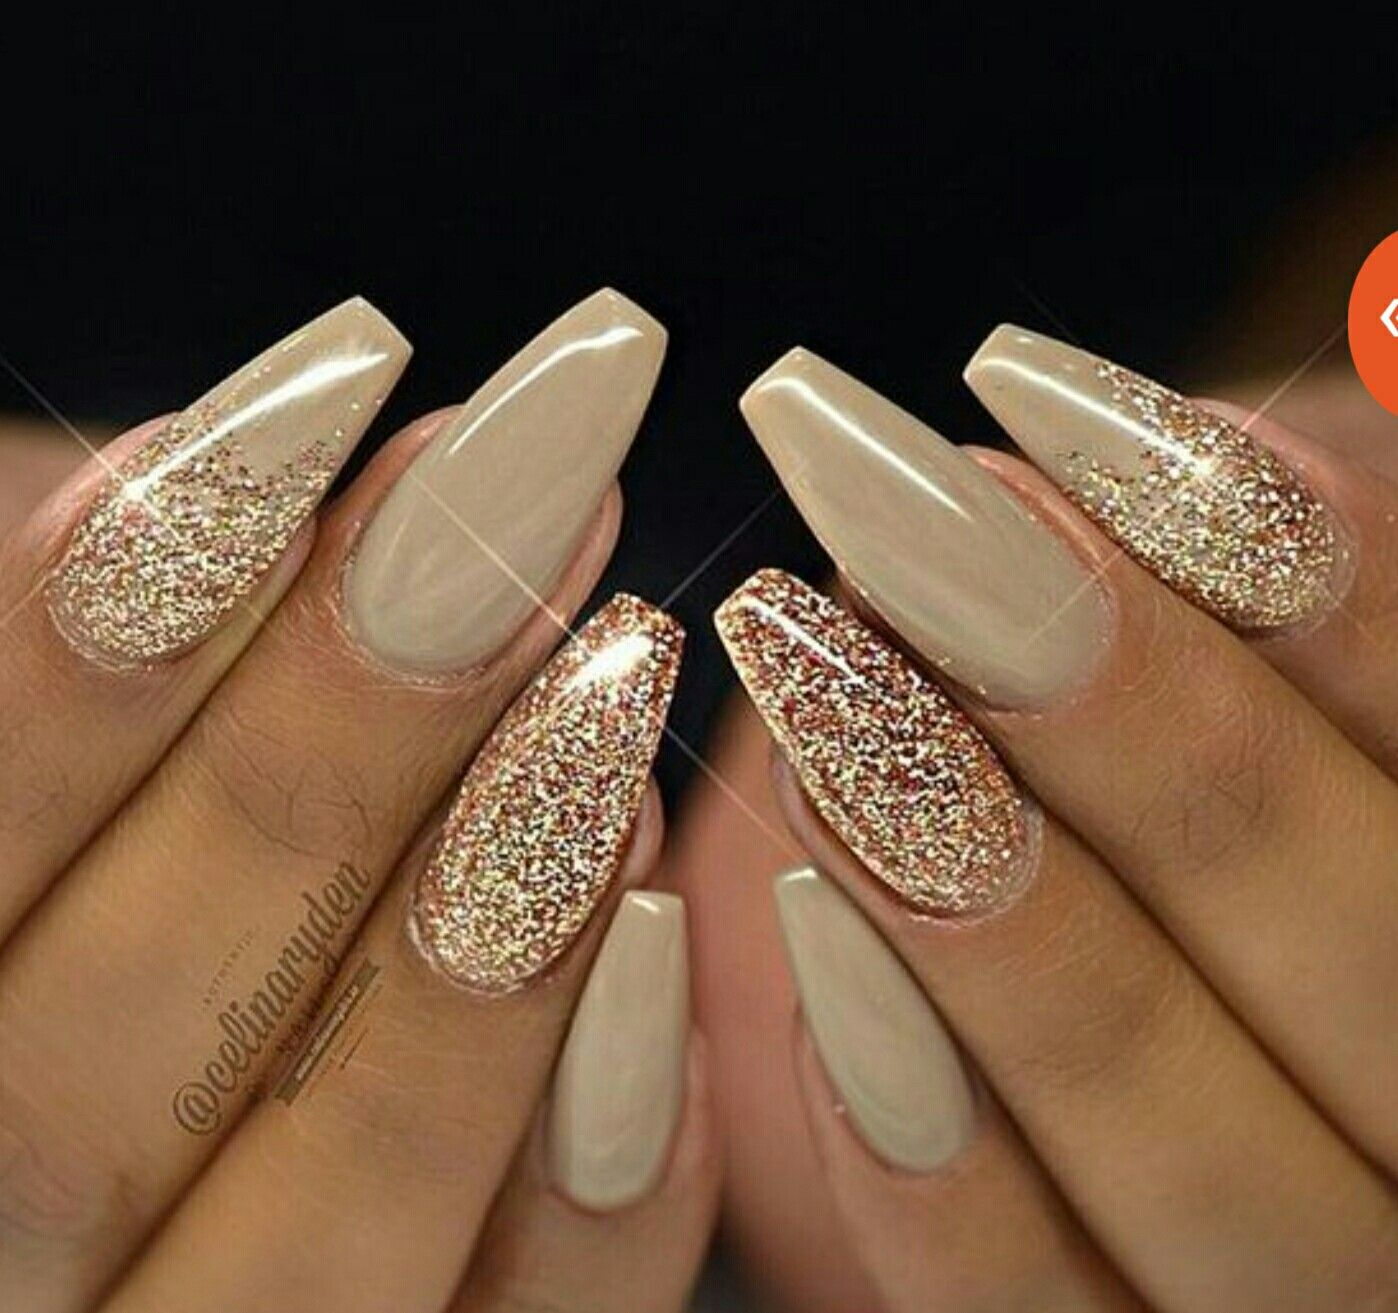 Top 40 Beautiful Glitter Nail Designs To Make You Look Trendy And Stylish Page 3 Of 42 Polish Addicted